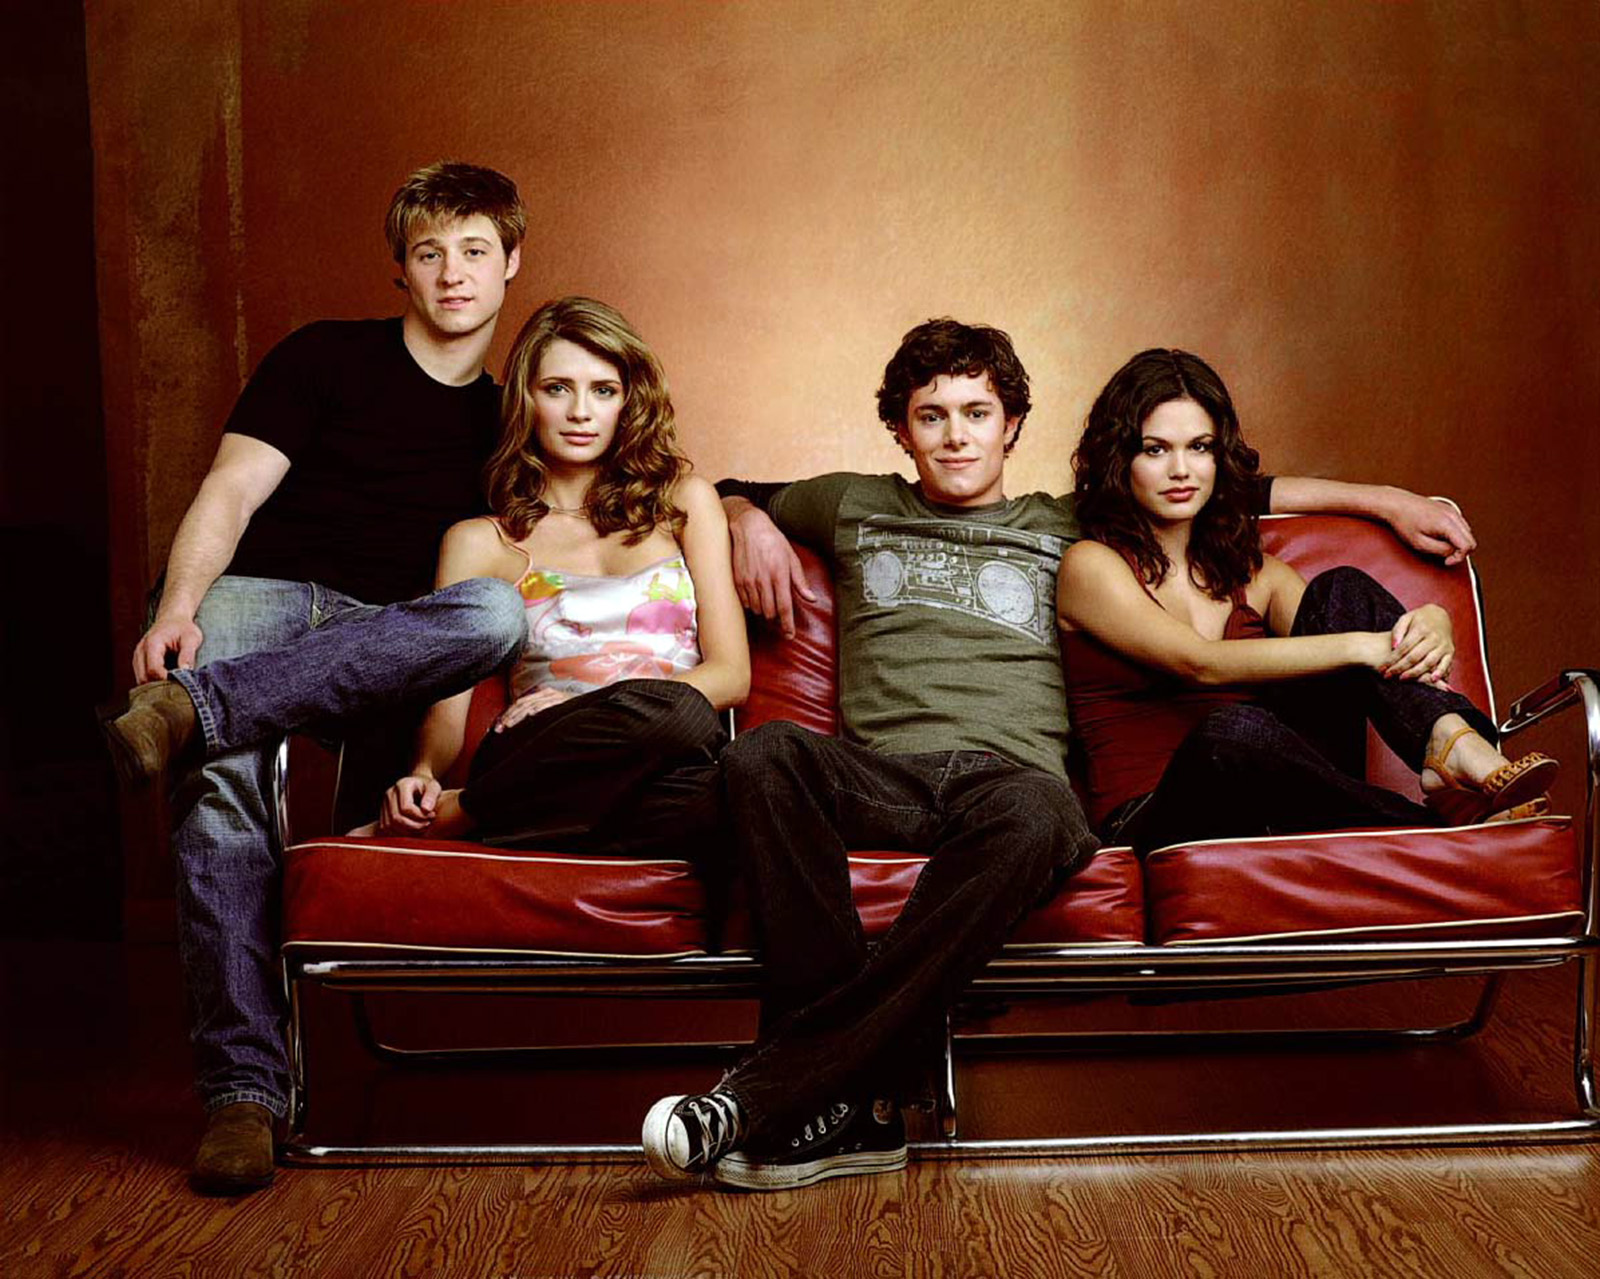 The O.C. TV series starring Peter Gallagher, Kelly Rowan, Ben McKenzie, Adam Brody, Rachel Bilson, Melinda Clarke, Mischa Barton, Tate Donovan, Alan Dale, Autumn Reeser, Chris Carmack, Willa Holland, Samaire Armstrong and Olivia Wilde [dvdbash]